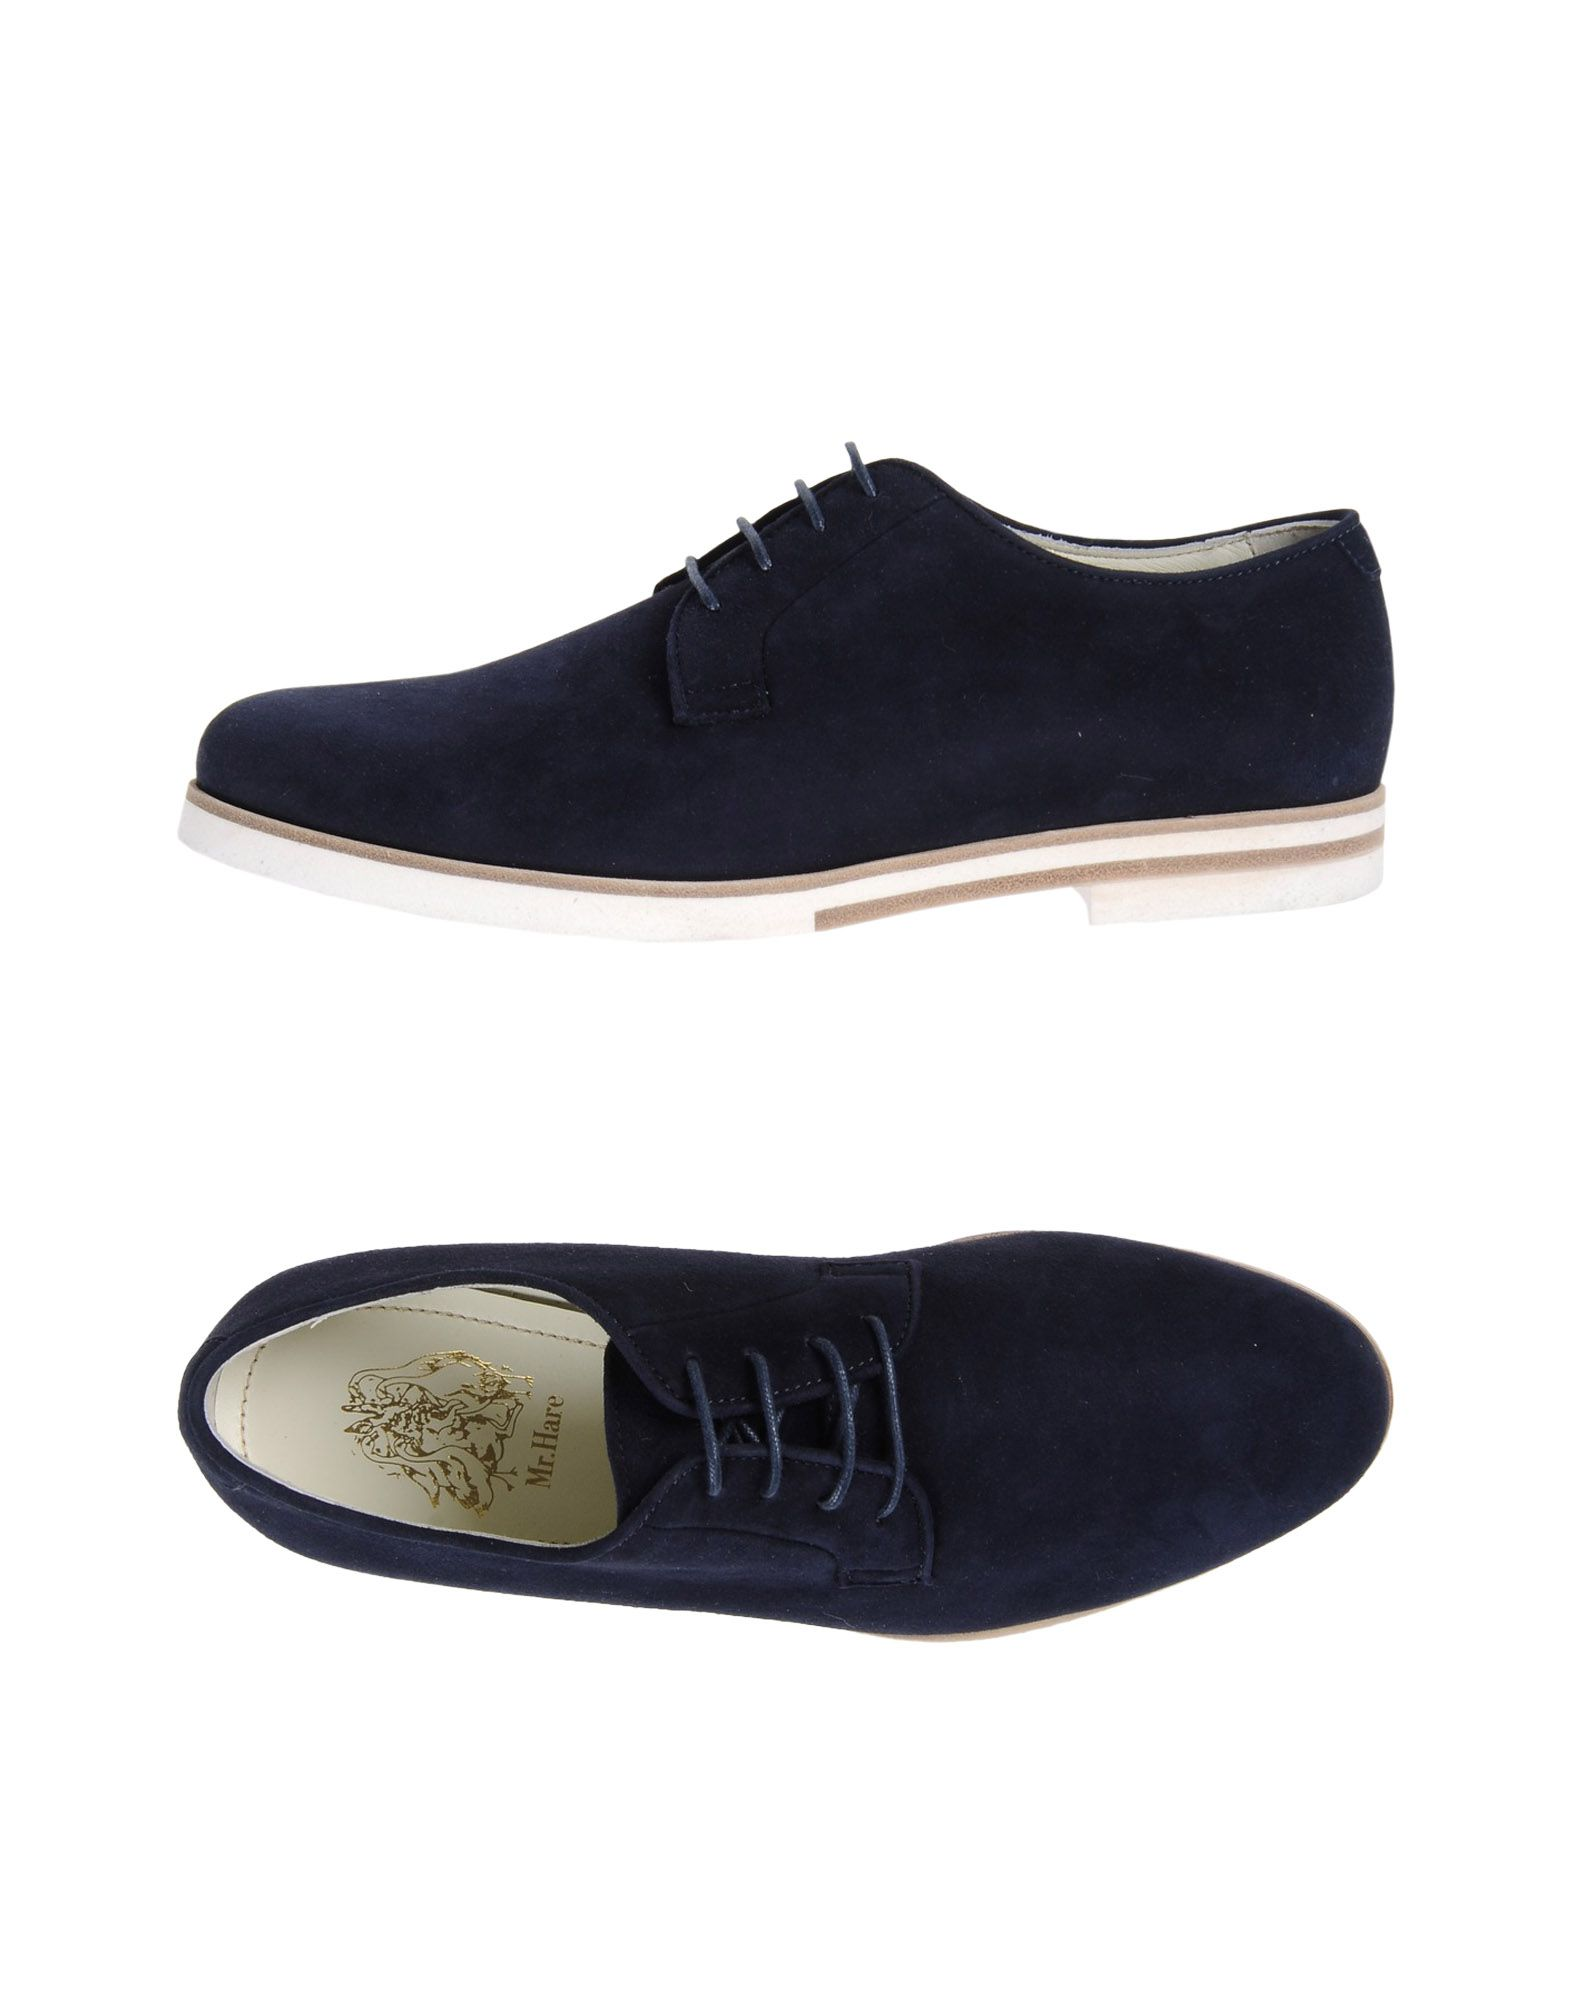 MR. HARE Lace-up shoes